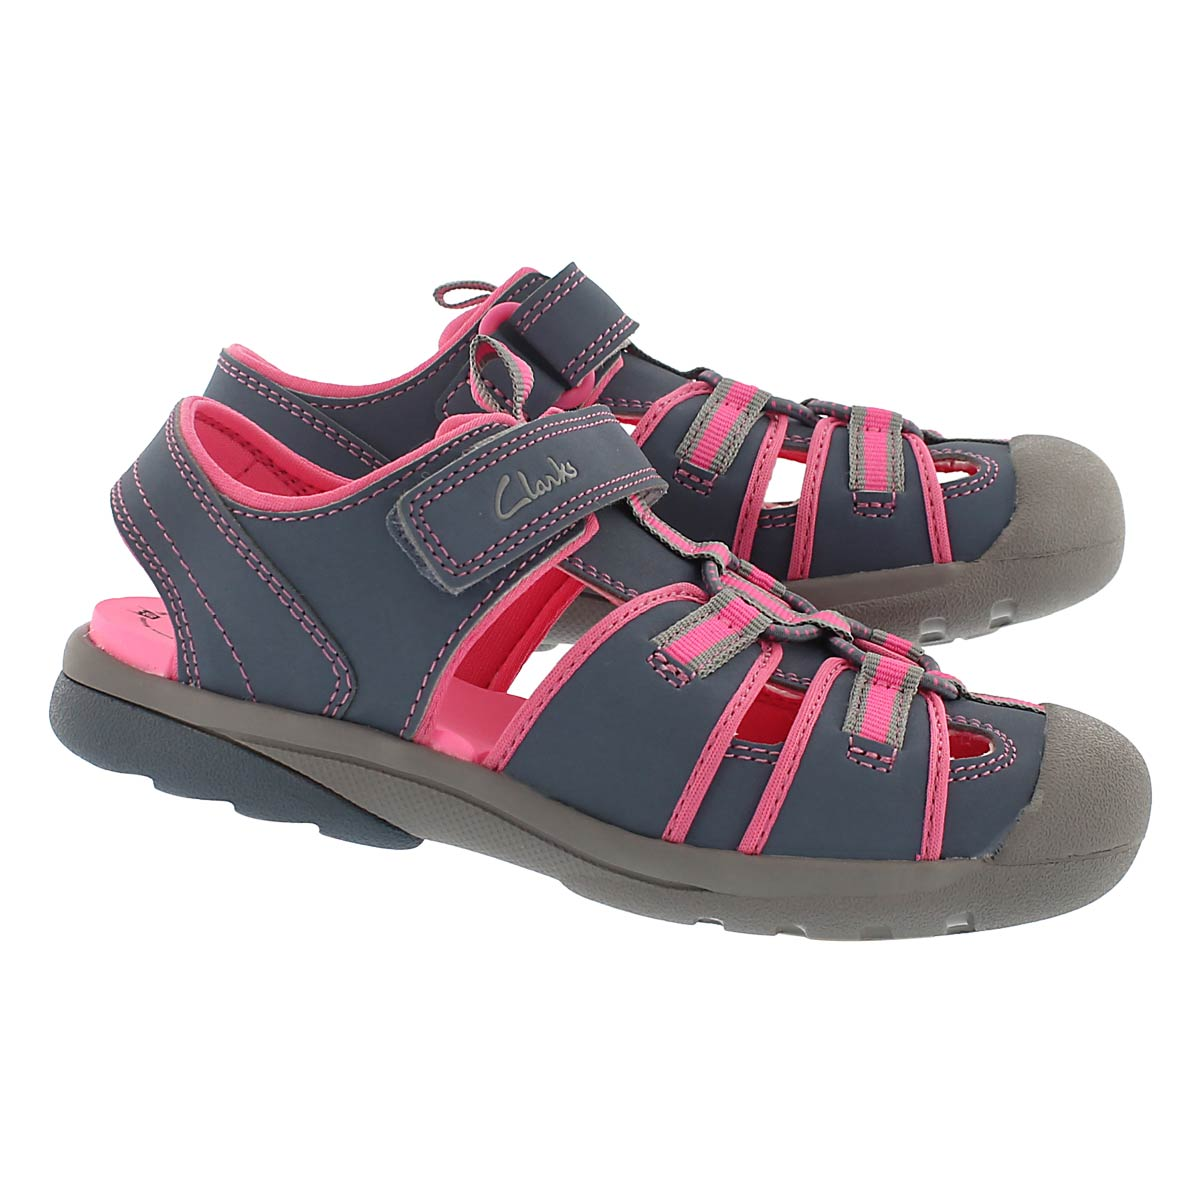 Grls Beach Tide gry/pnk fisherman sandal